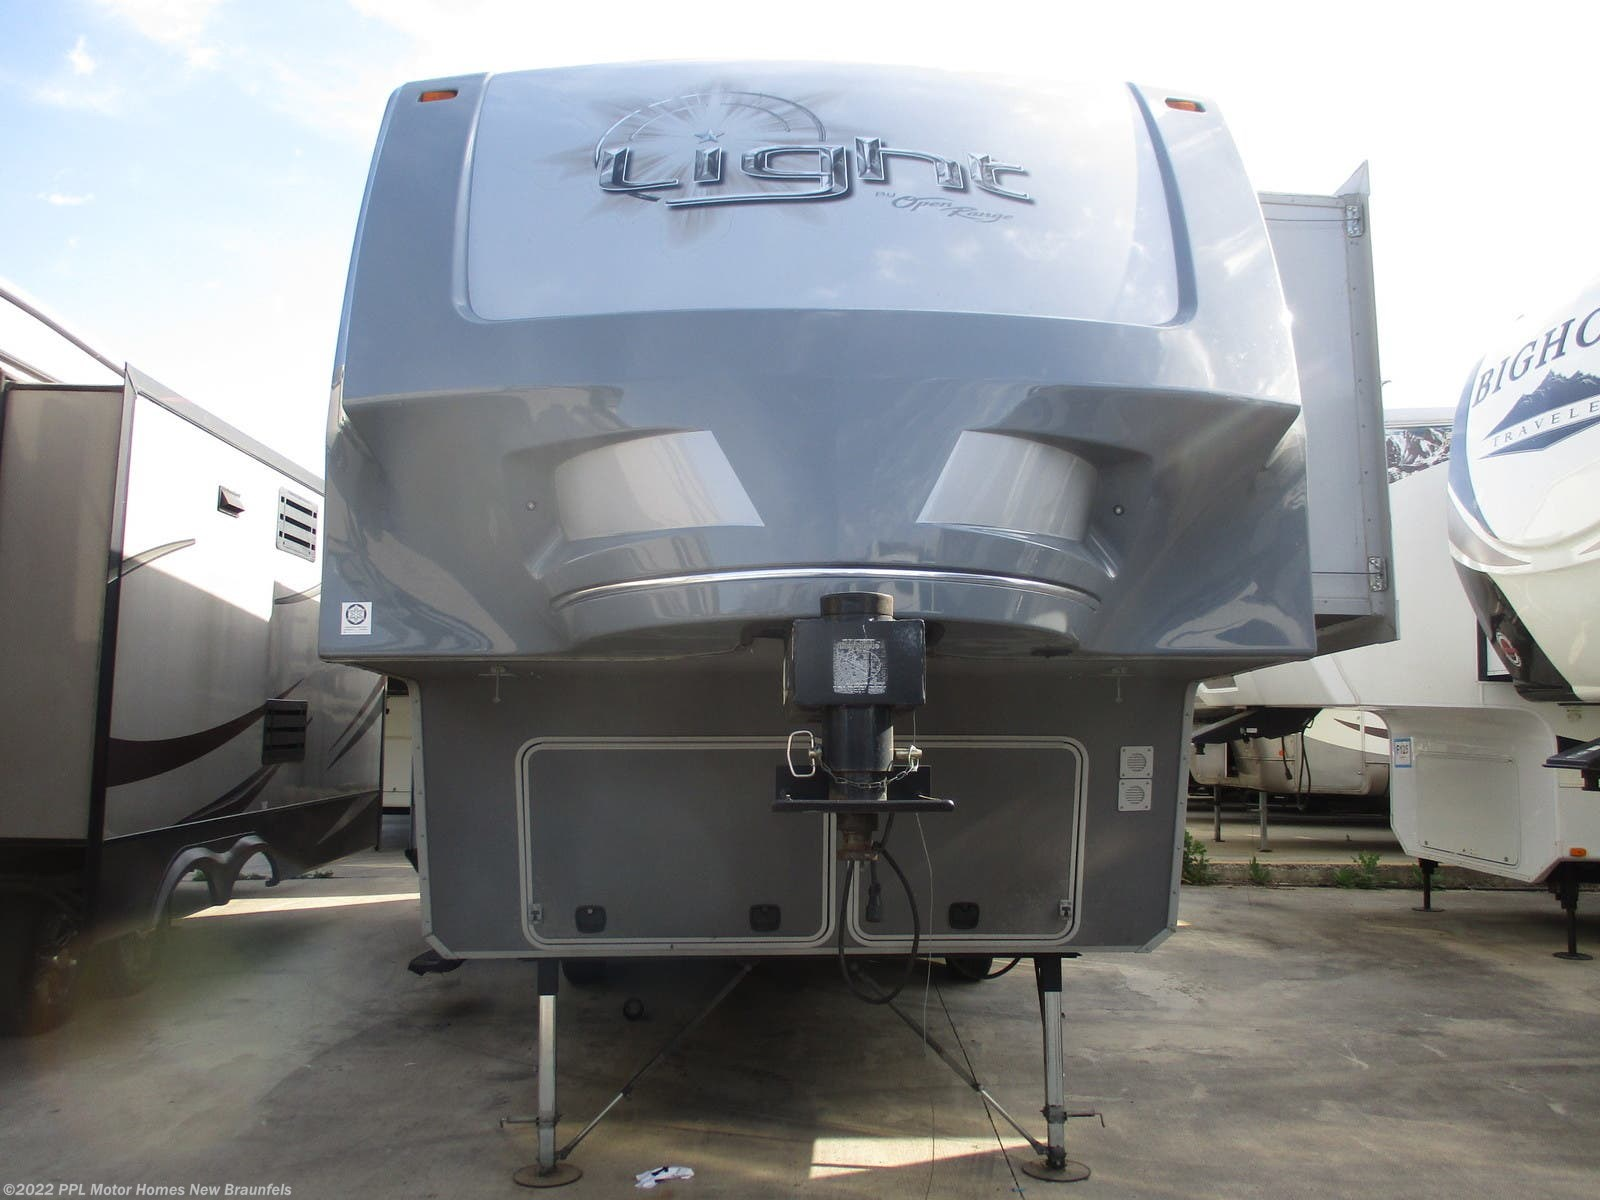 Lp Gas Cooktops For Rv On Sale Now Ppl Motor Homes >> 2015 Open Range Rv 297rls For Sale In New Braunfels Tx 78130 F141nb